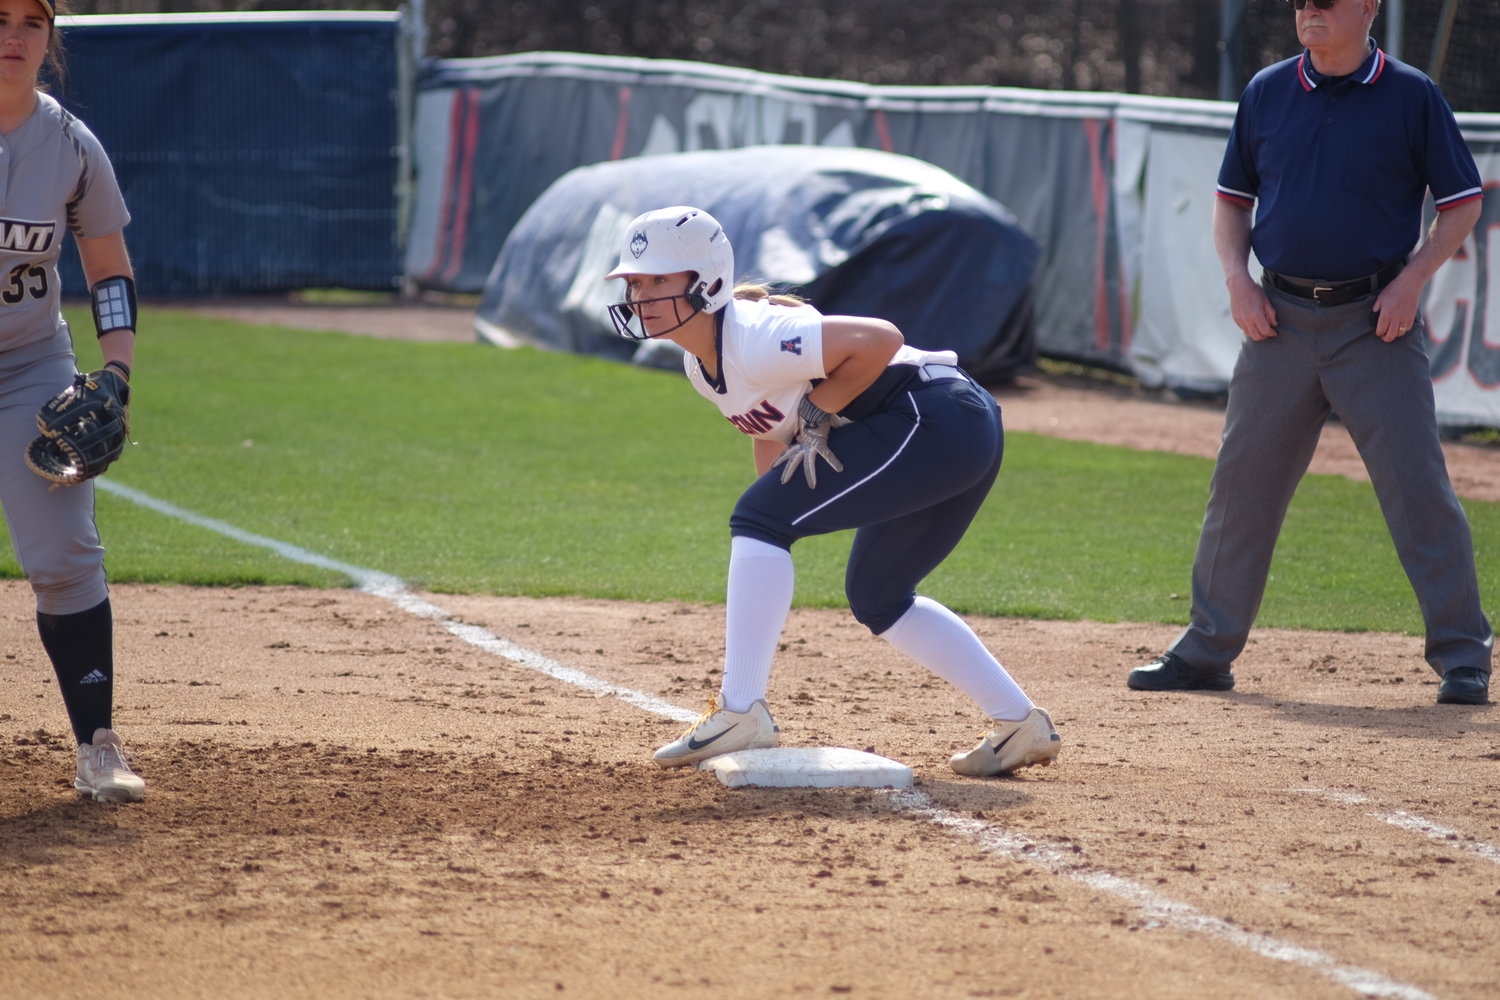 Junior Carli Cutler stands on first base during a home game at Burrill Family Field. (Nicholas Hampton/The Daily Campus)